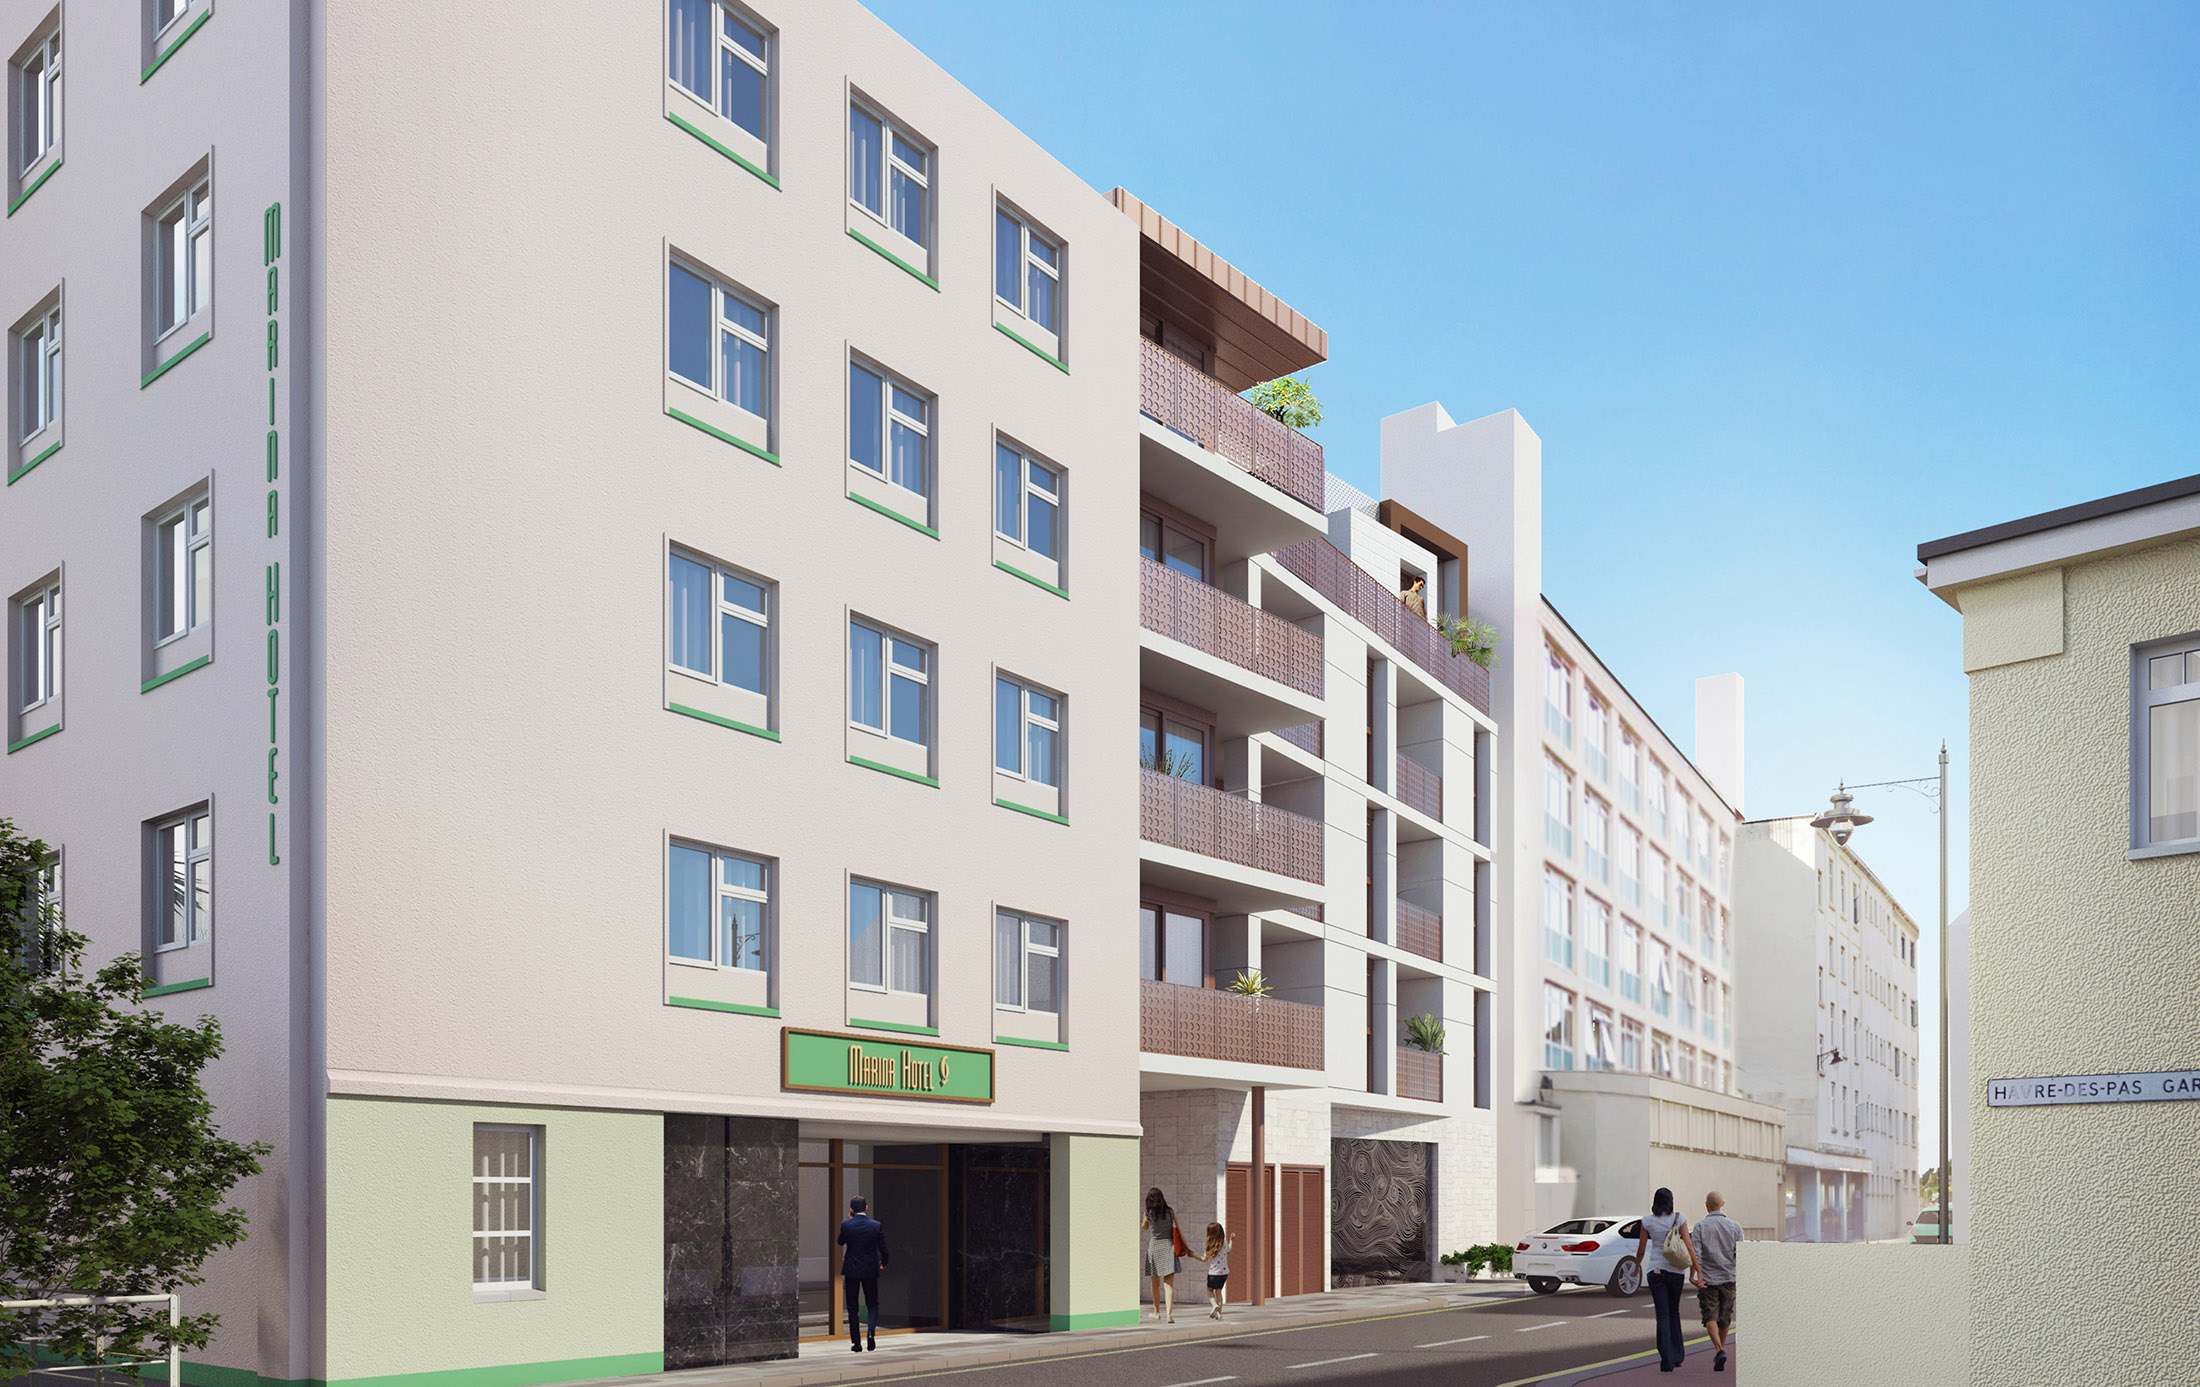 PLANNING APPROVAL FOR HAVRE DES PAS | Axis Mason